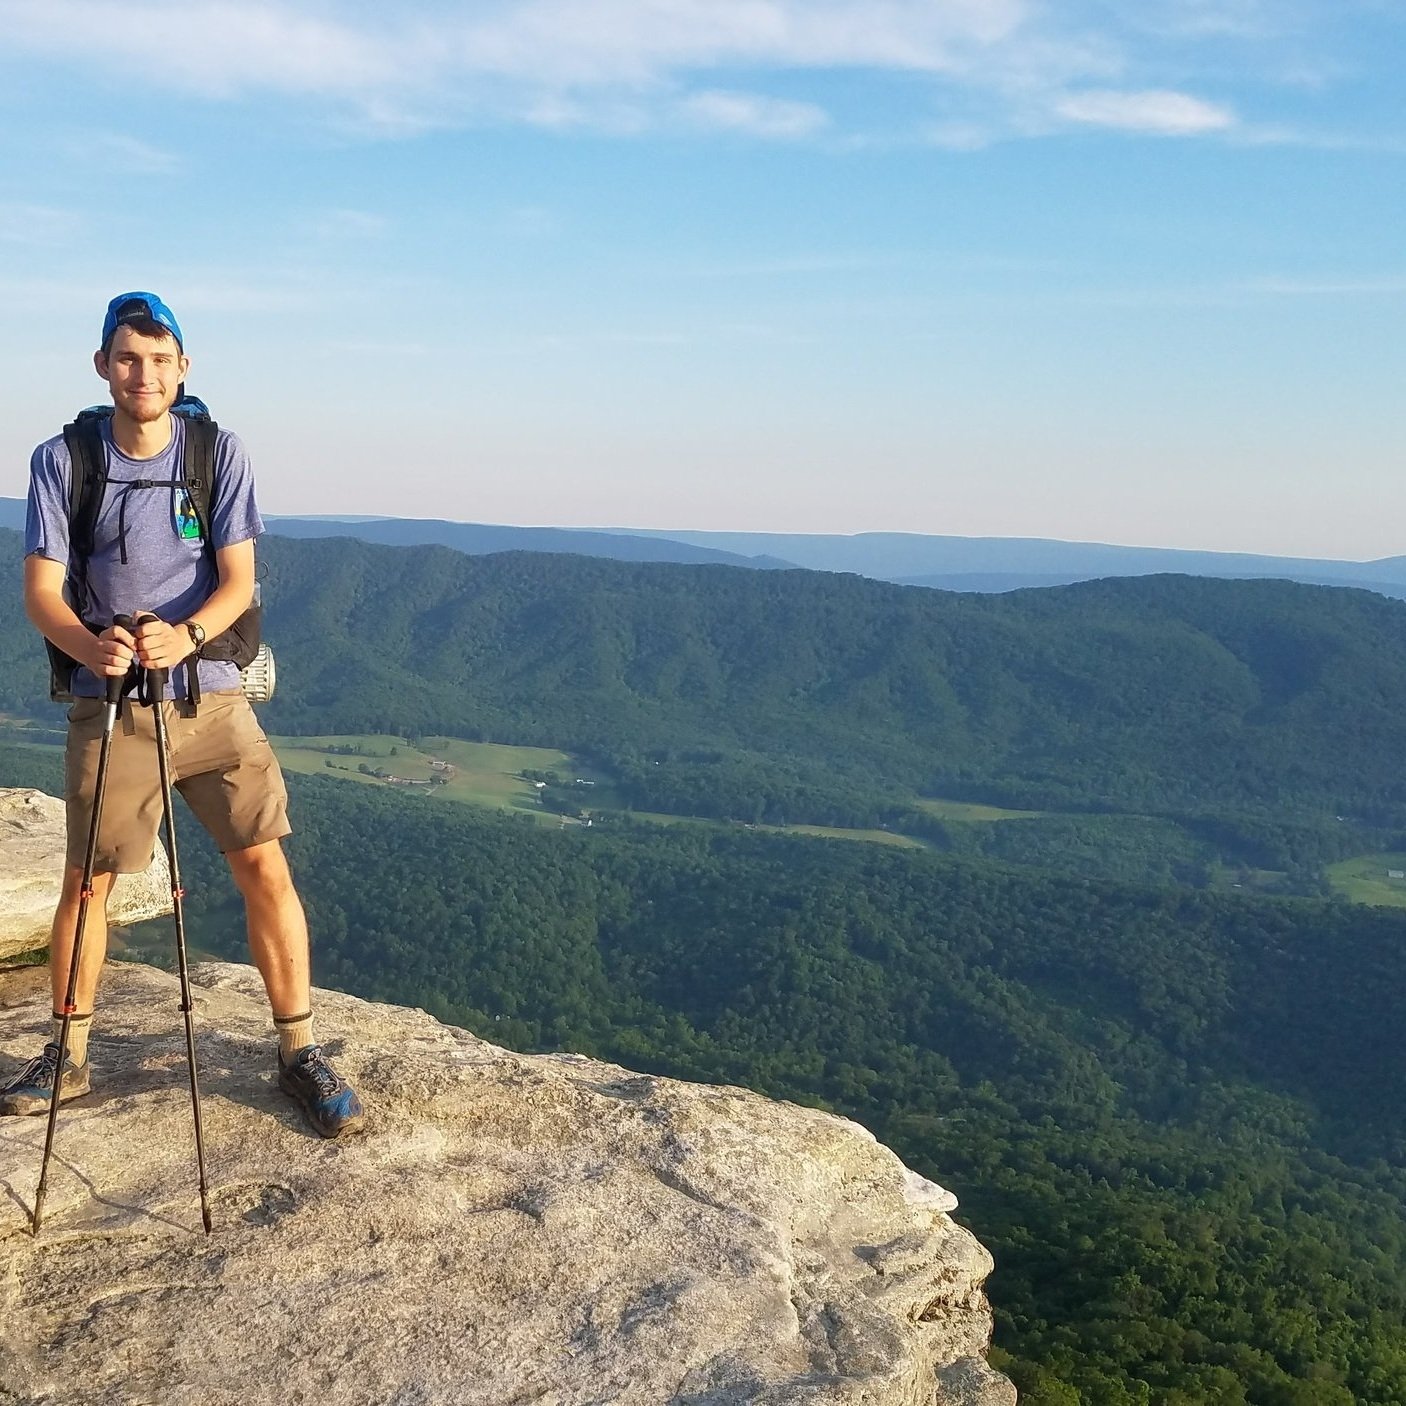 Keep Matthew Hiking - Matthew's journey begins at the border of Mexico and finishes at the Canadian border. Help support Matthew on his grand adventure.